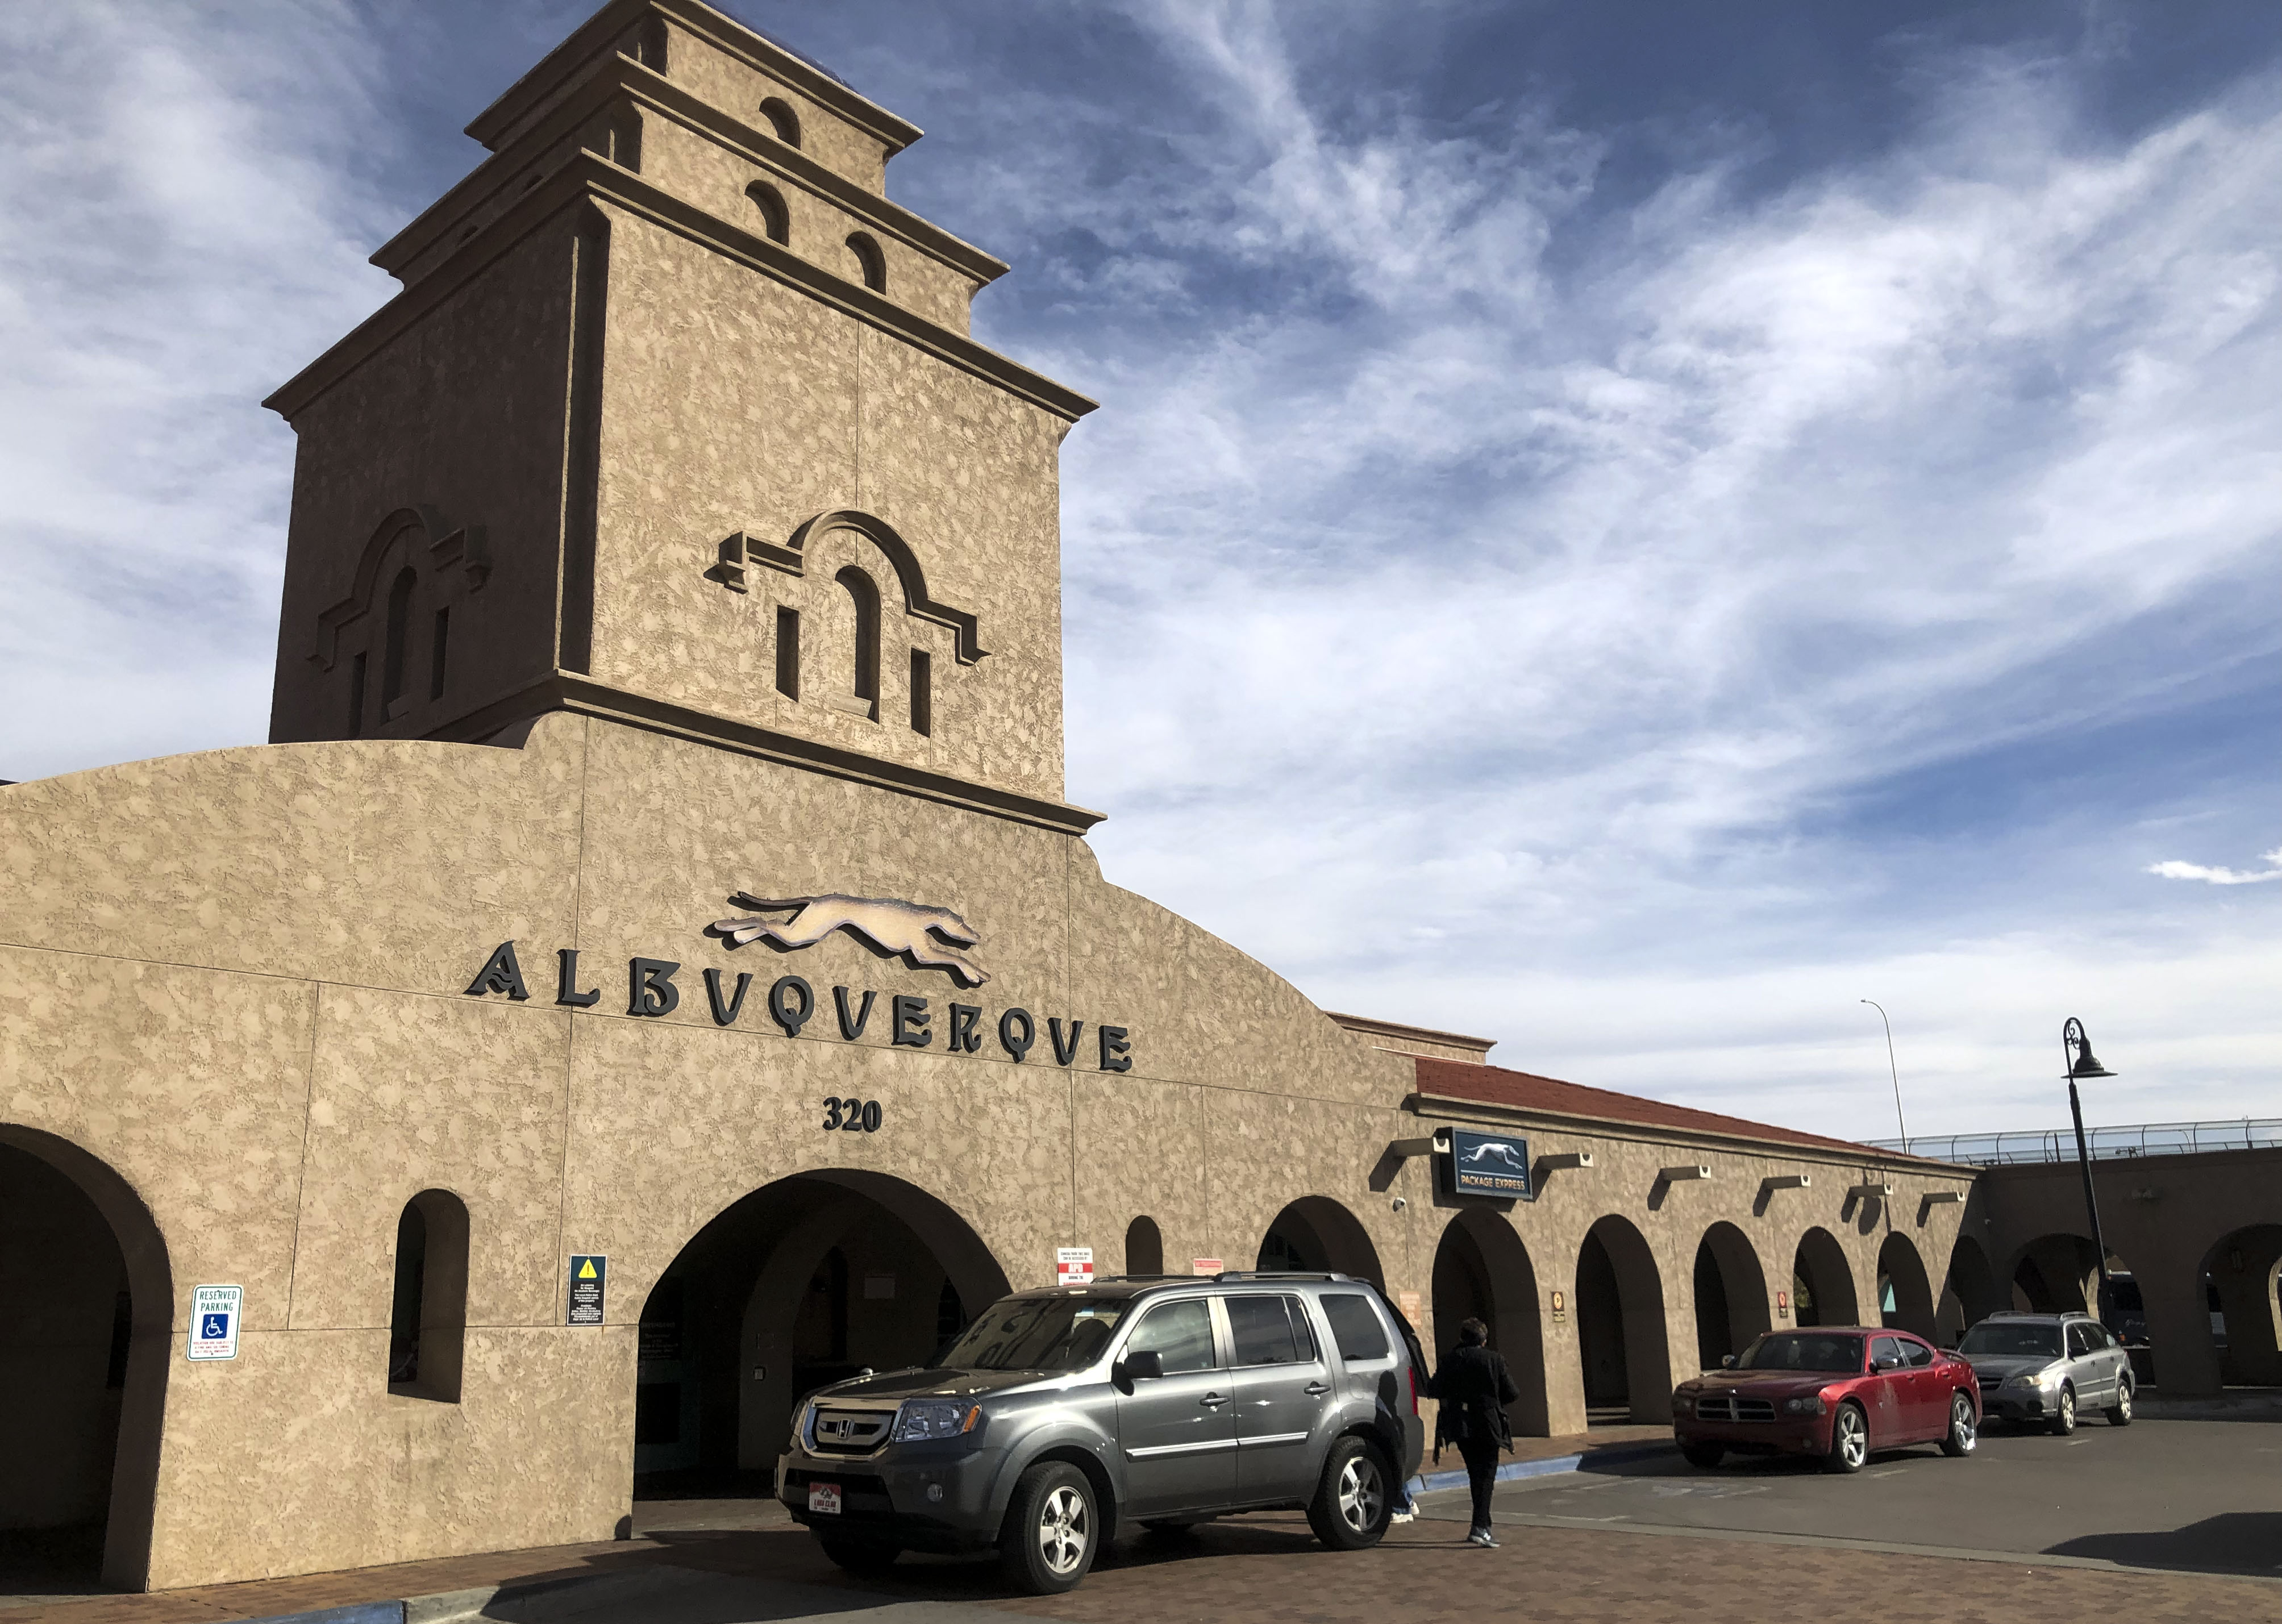 Outside the Greyhound Bus station in downtown Albuqueruqe, March 05, 2019.